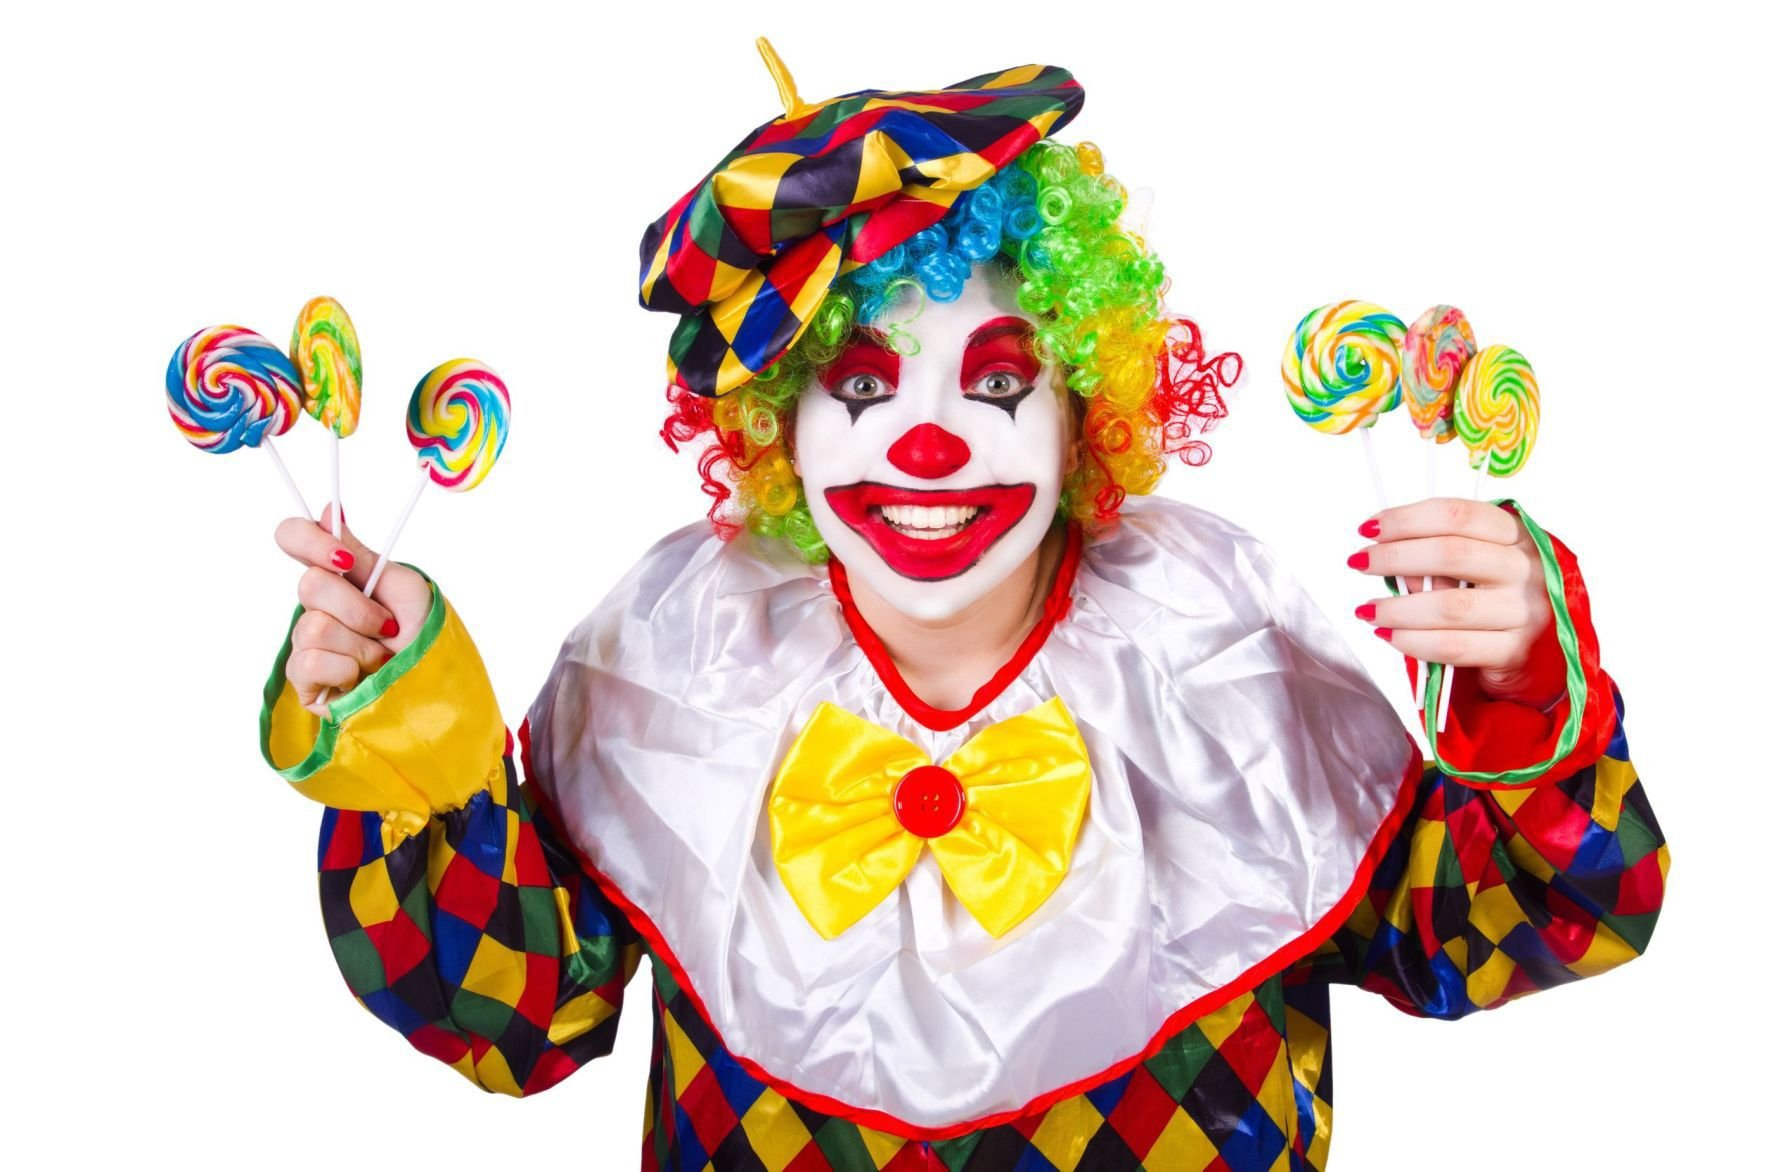 Horror writer Stephen King Calm down about clowns News